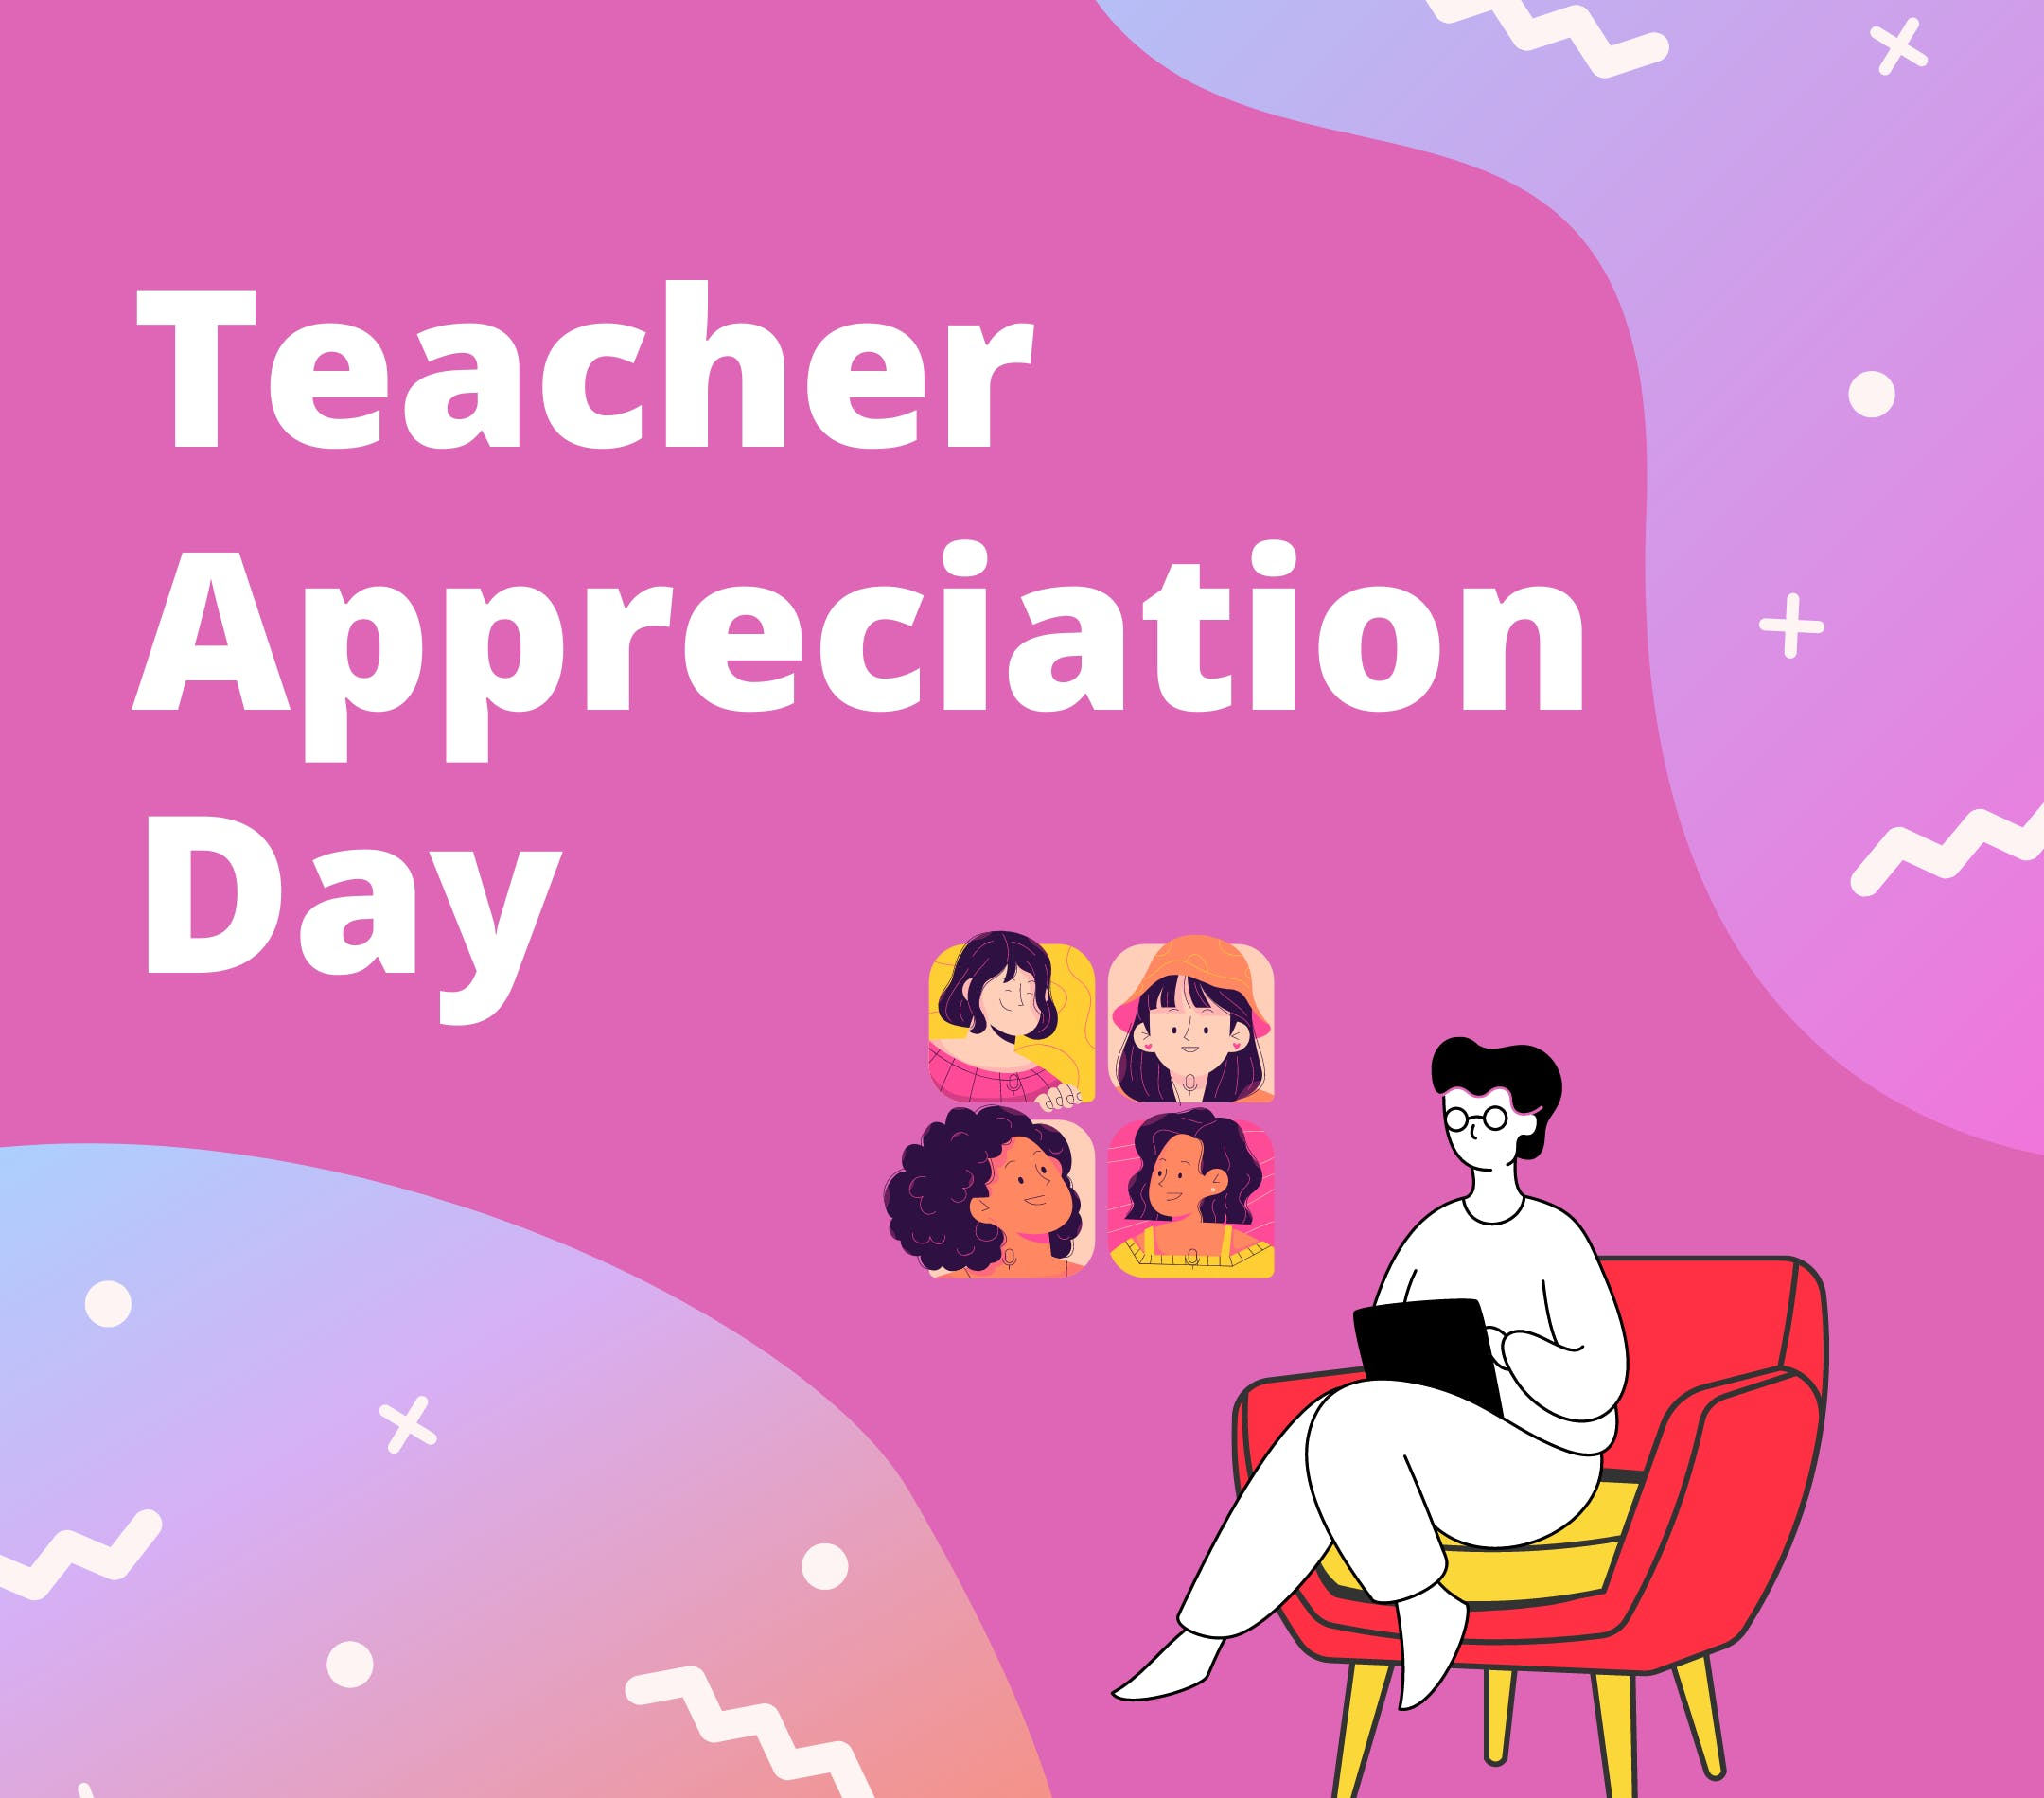 Cover Image for Best Teacher Appreciation Ideas That They'll Love